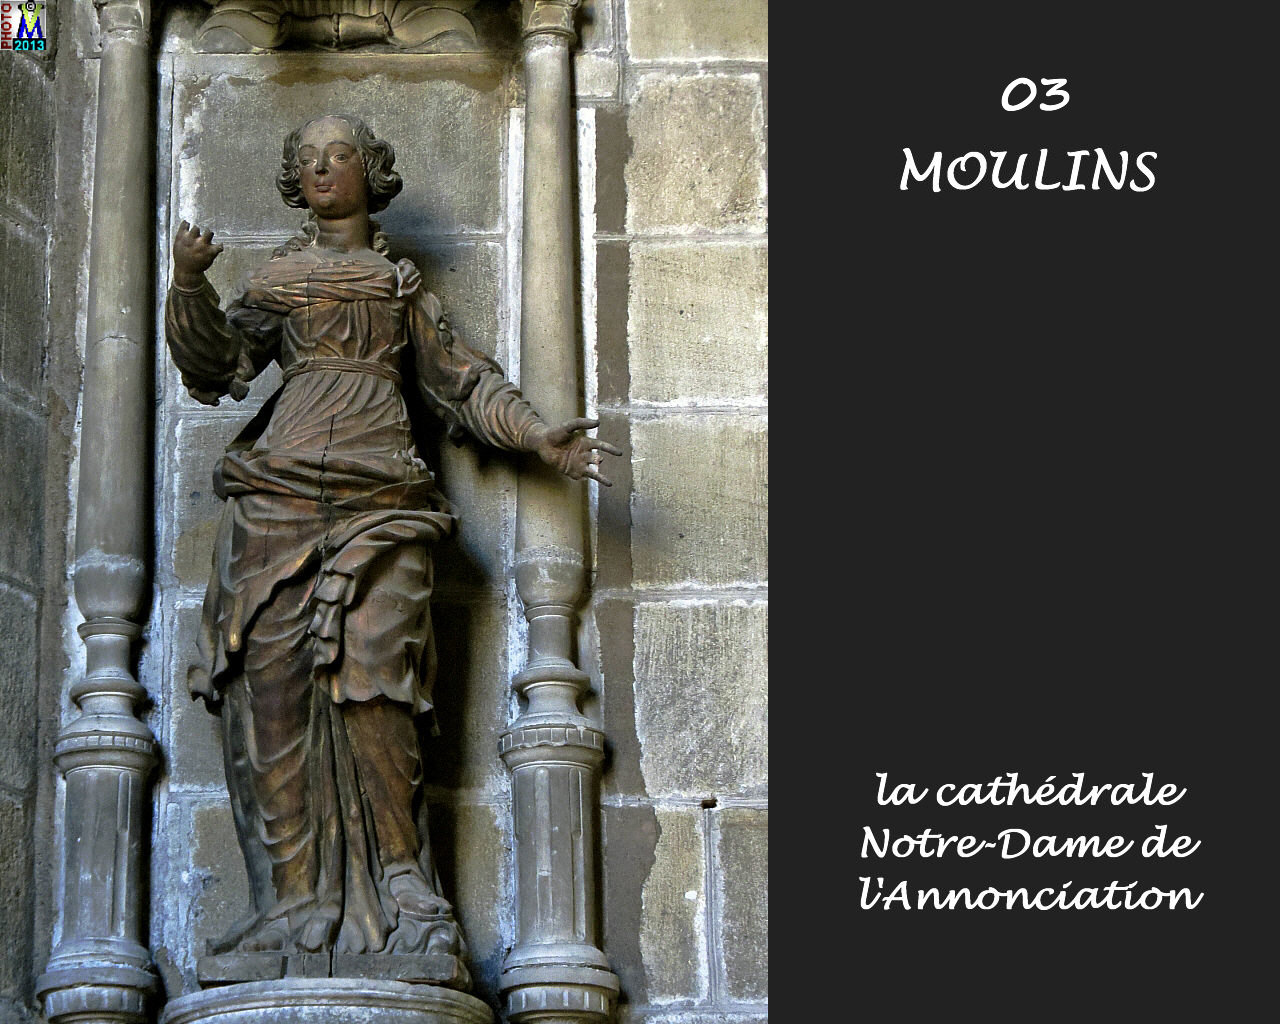 03MOULINS_cathedrale_252.jpg